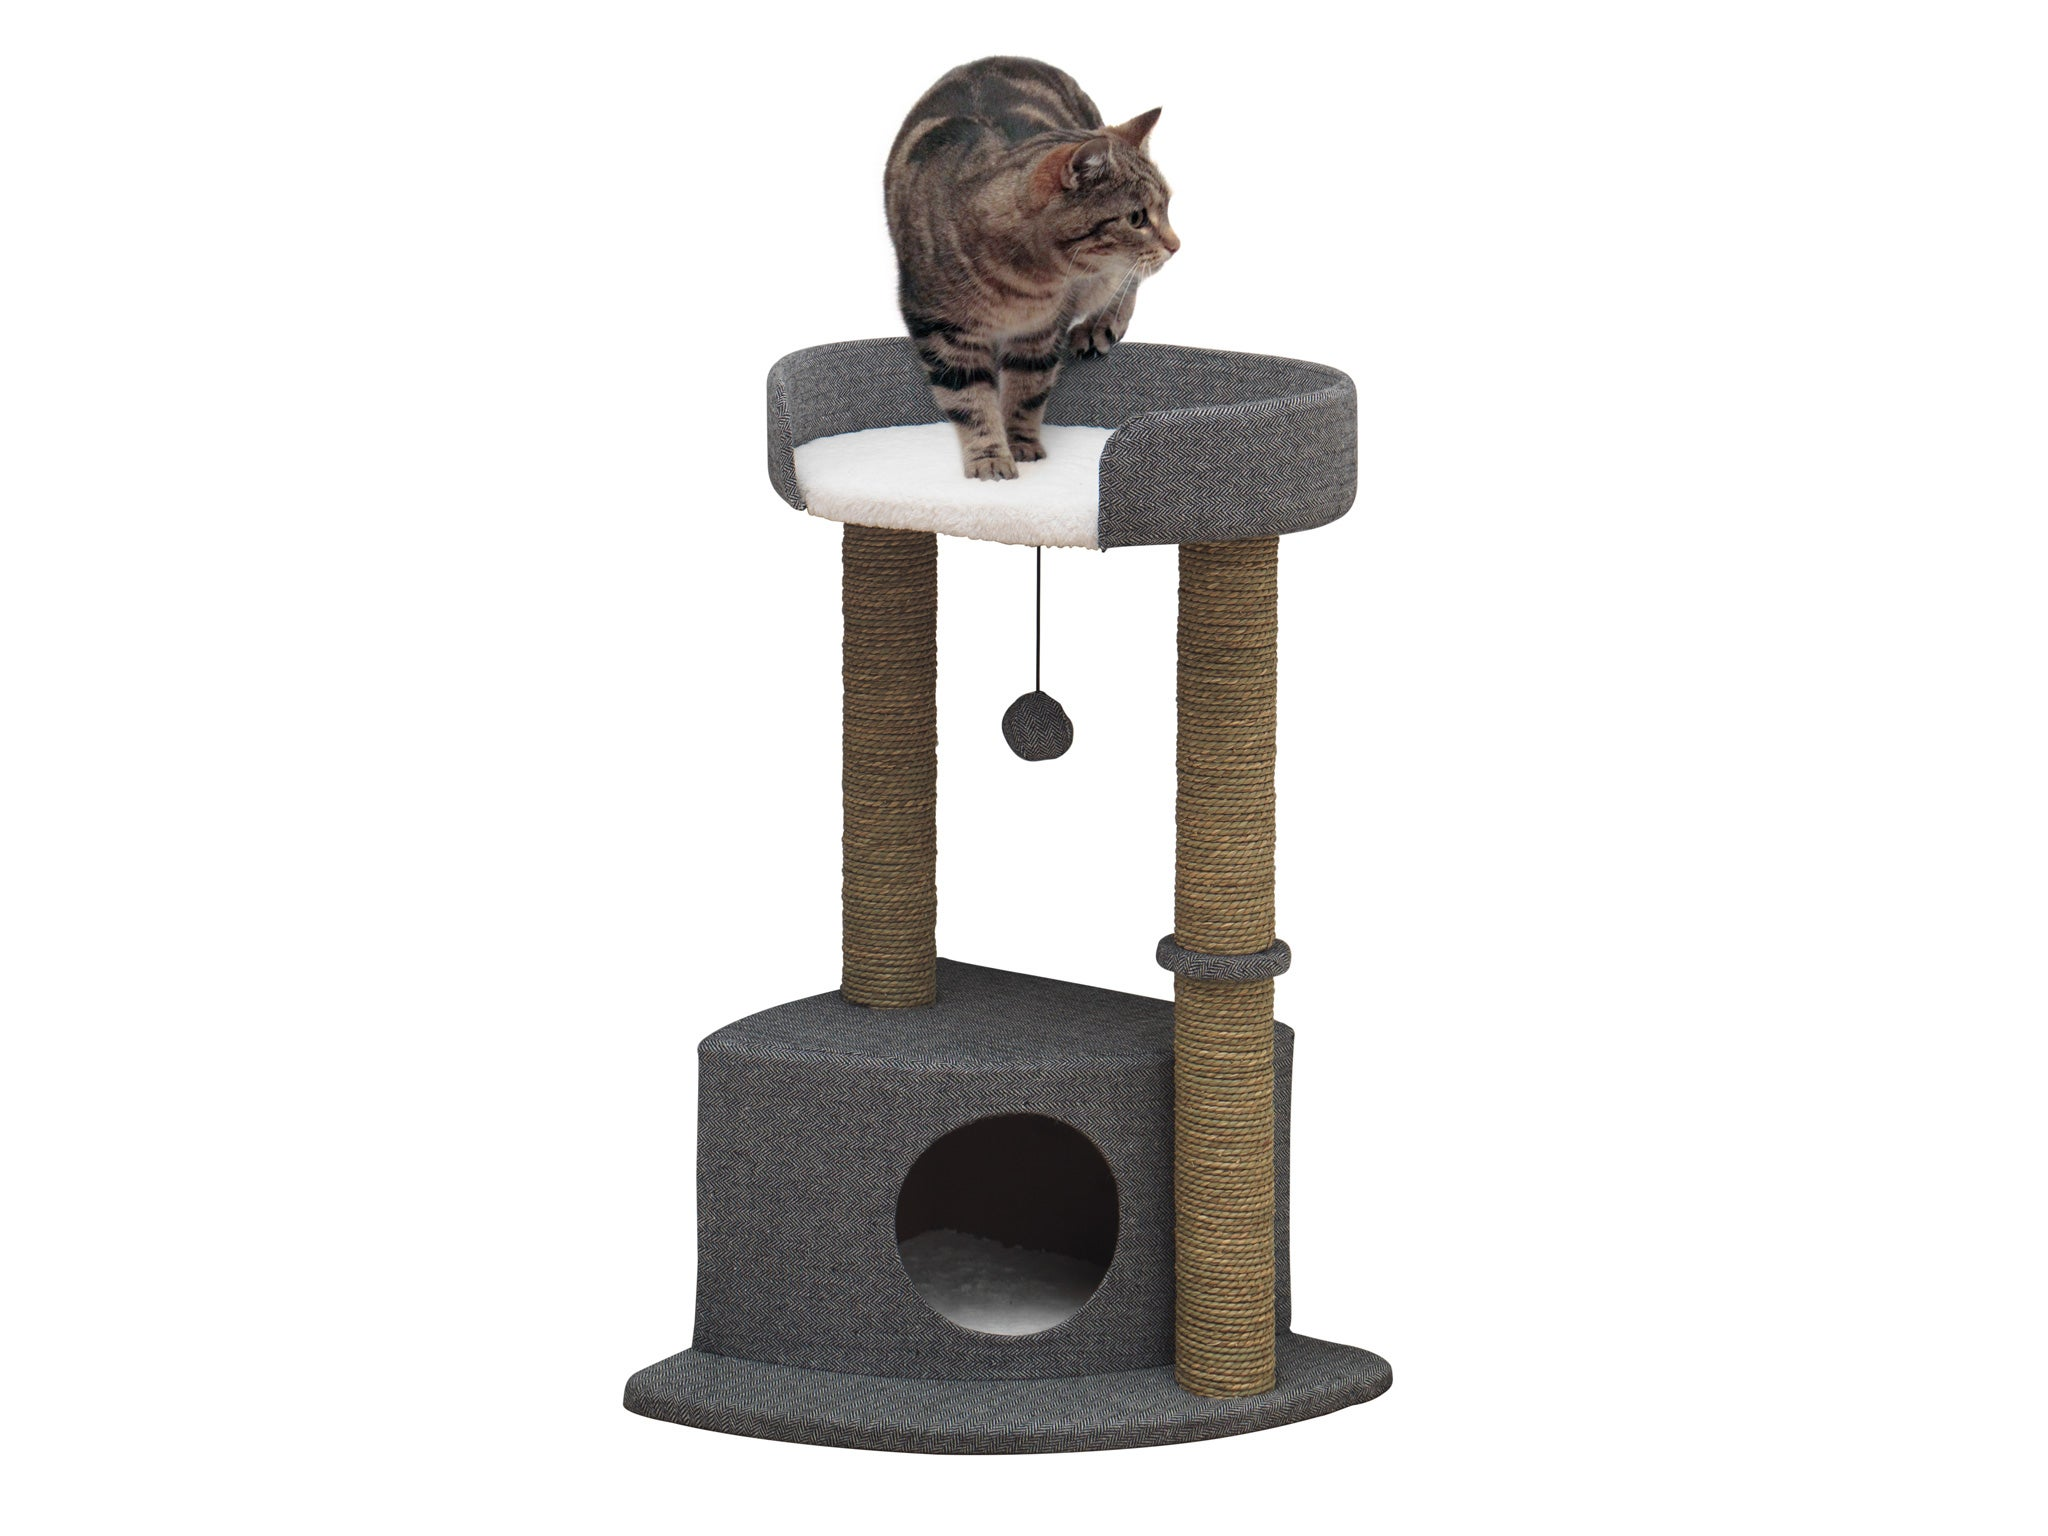 10 best cat scratchers | The Independent